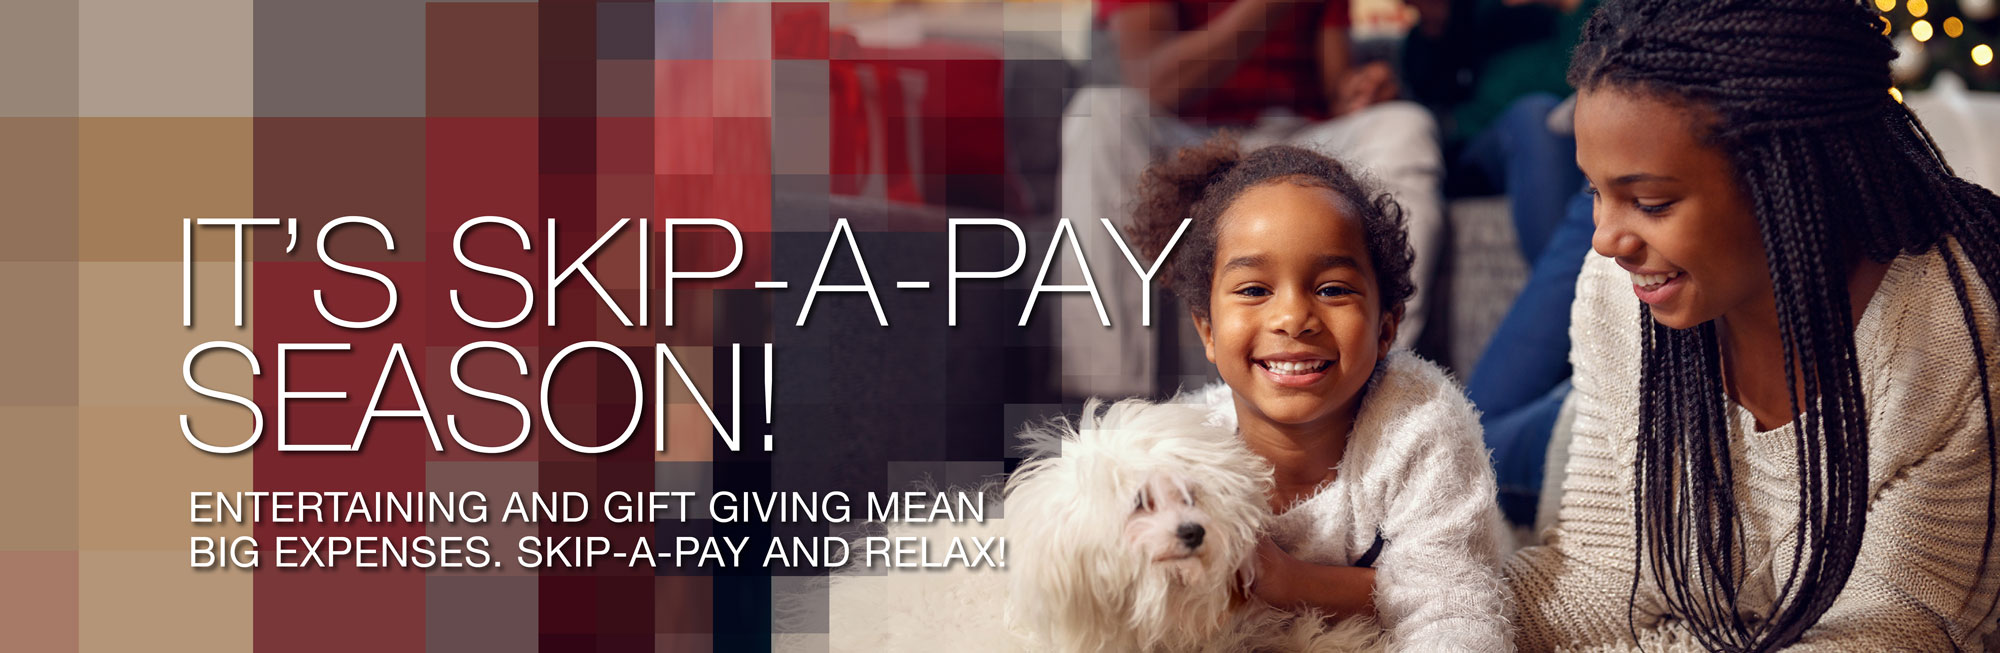 entertaining and gift giving mean big expenses this holiday season. SKIP-A-PAY and relax!